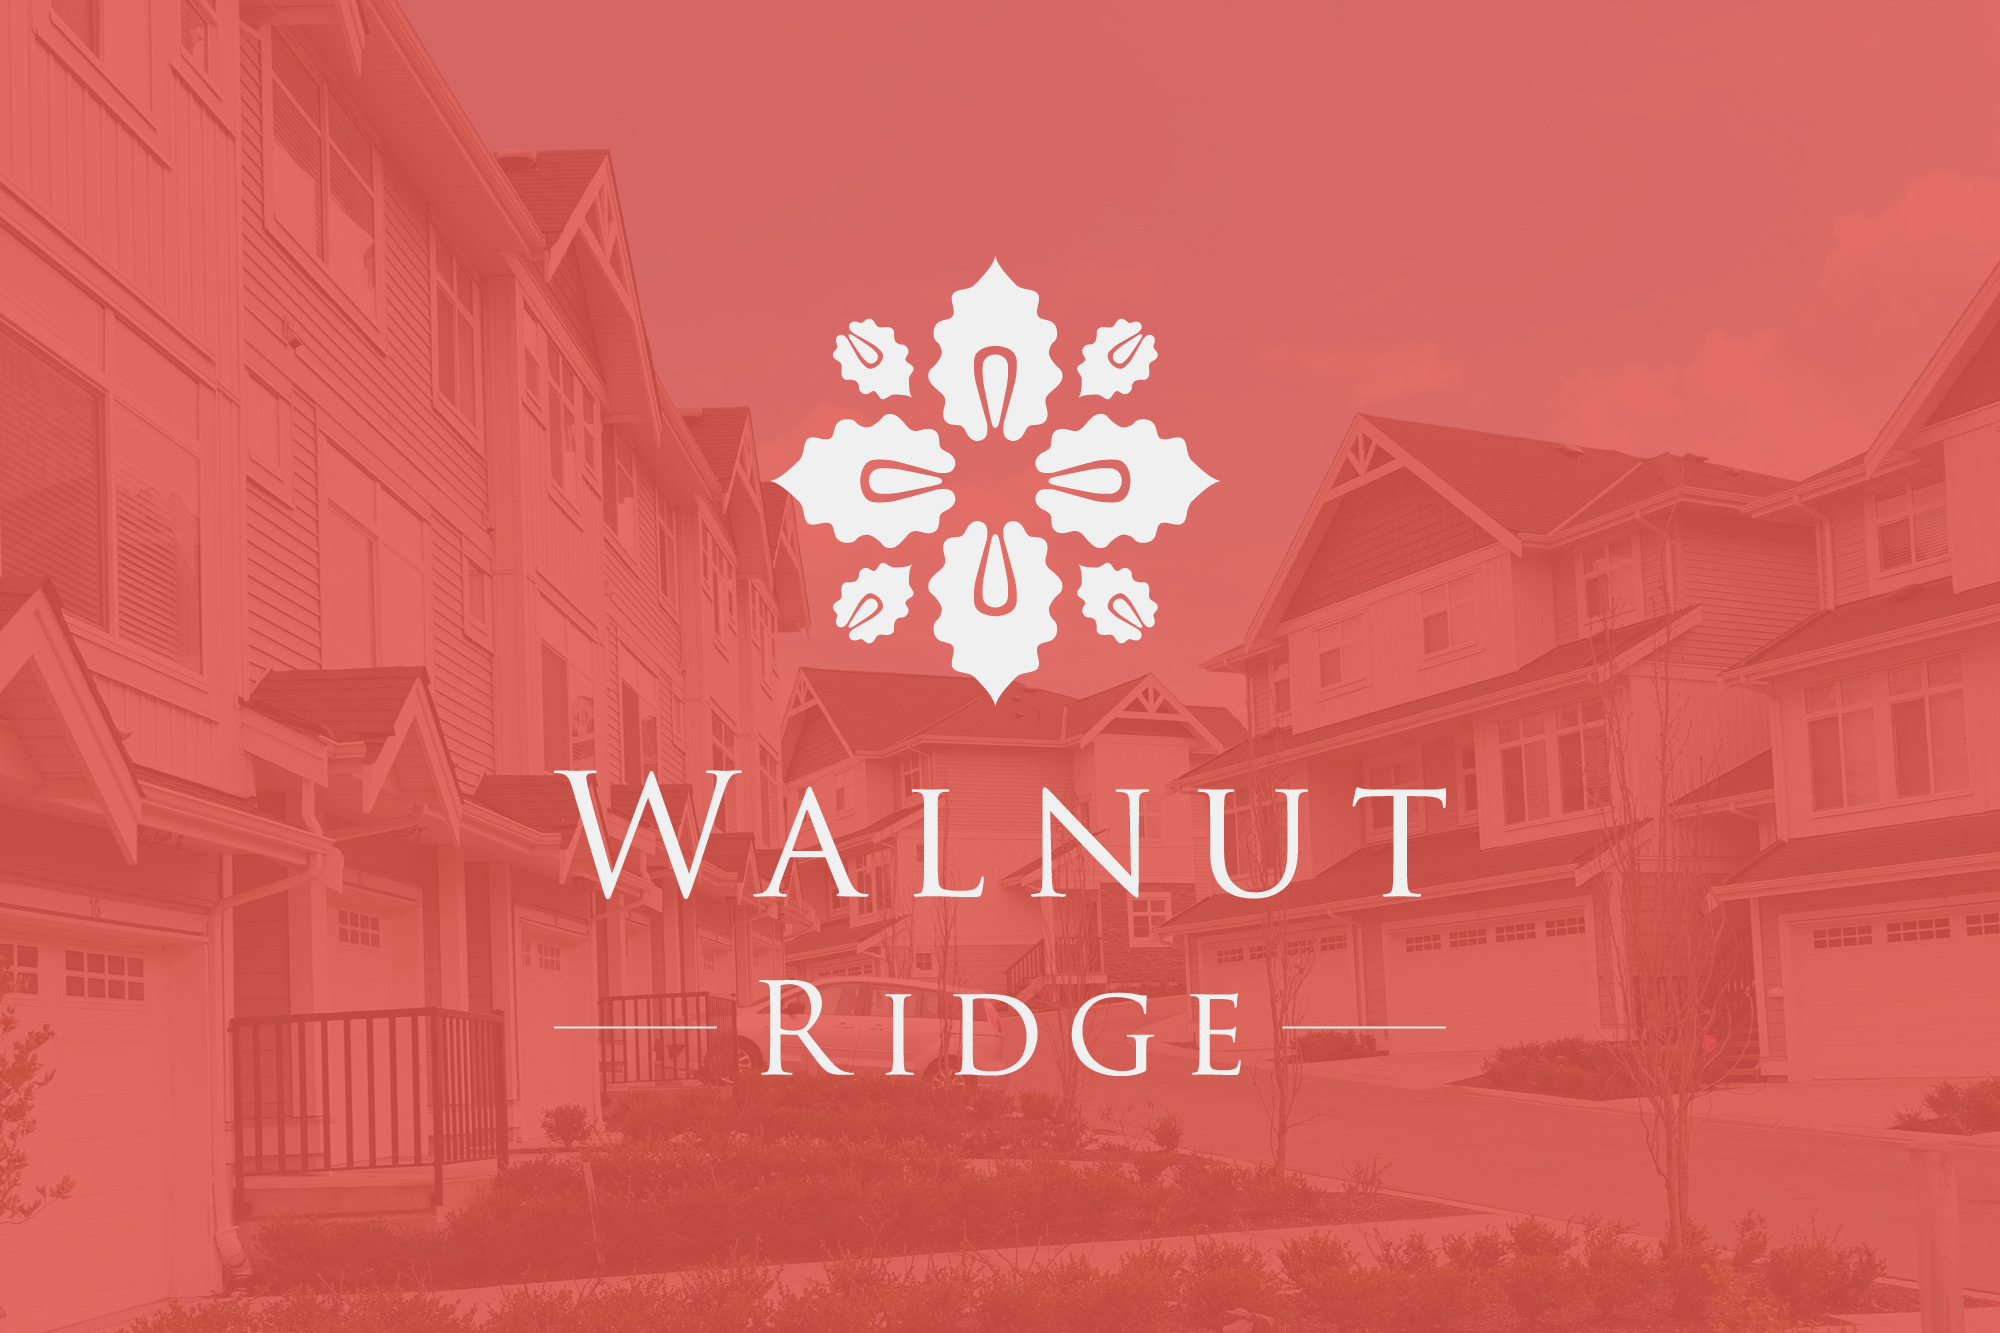 26 spacious 3 & 4 bedroom townhomes with serene mountain views, nestled in Surrey, B.C.